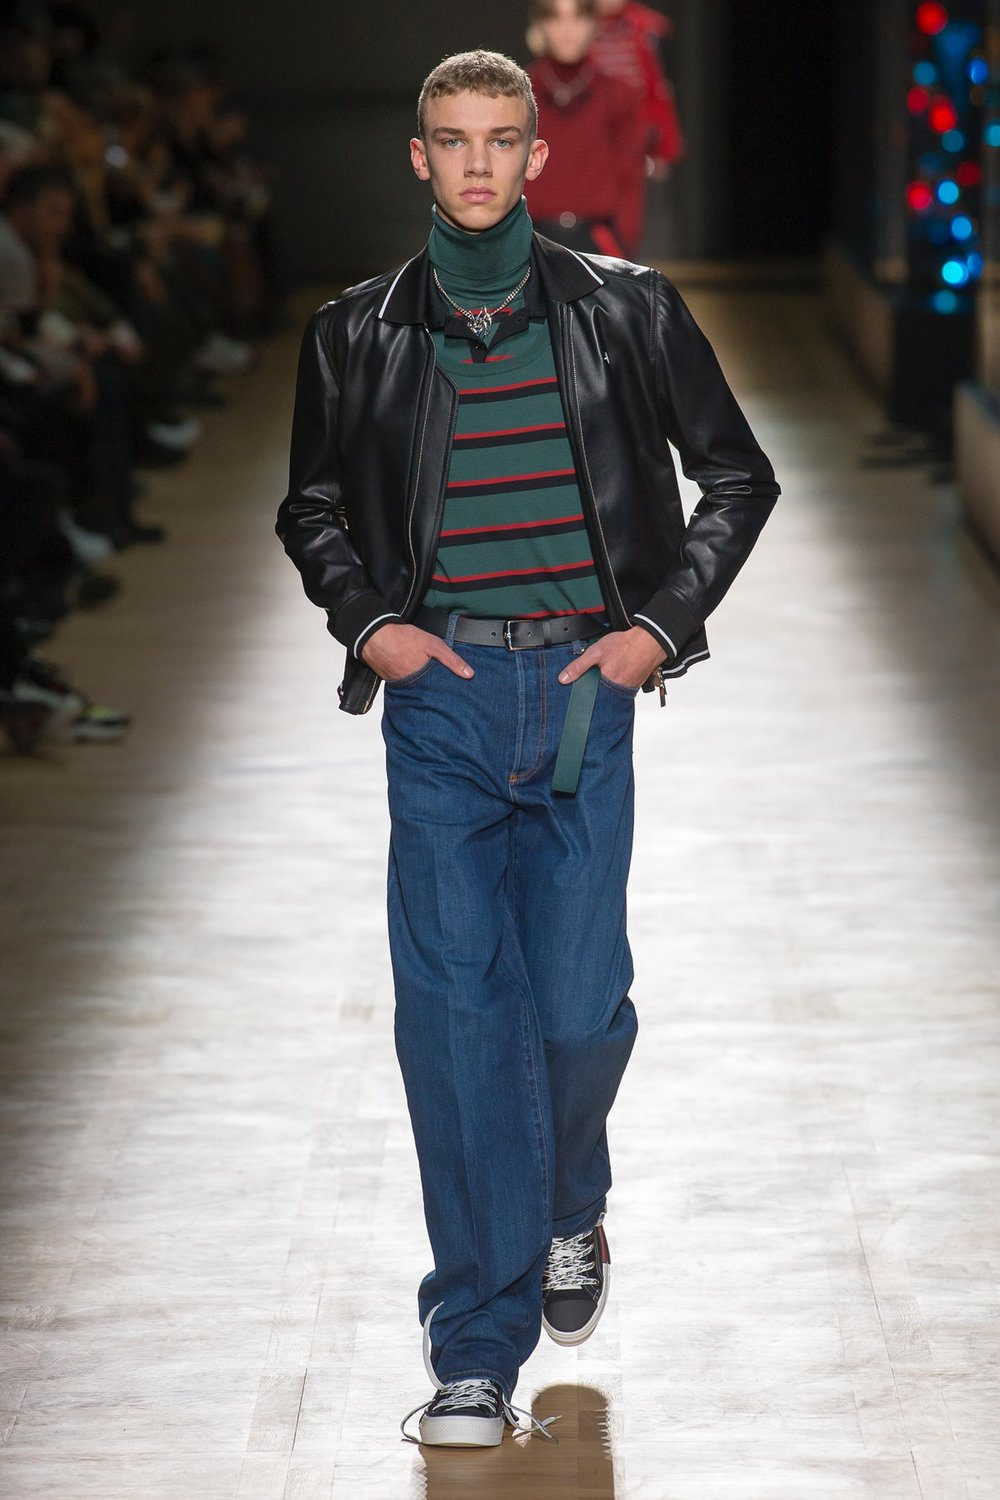 dior_homme_look_17_menswear_autumn_2018.jpeg